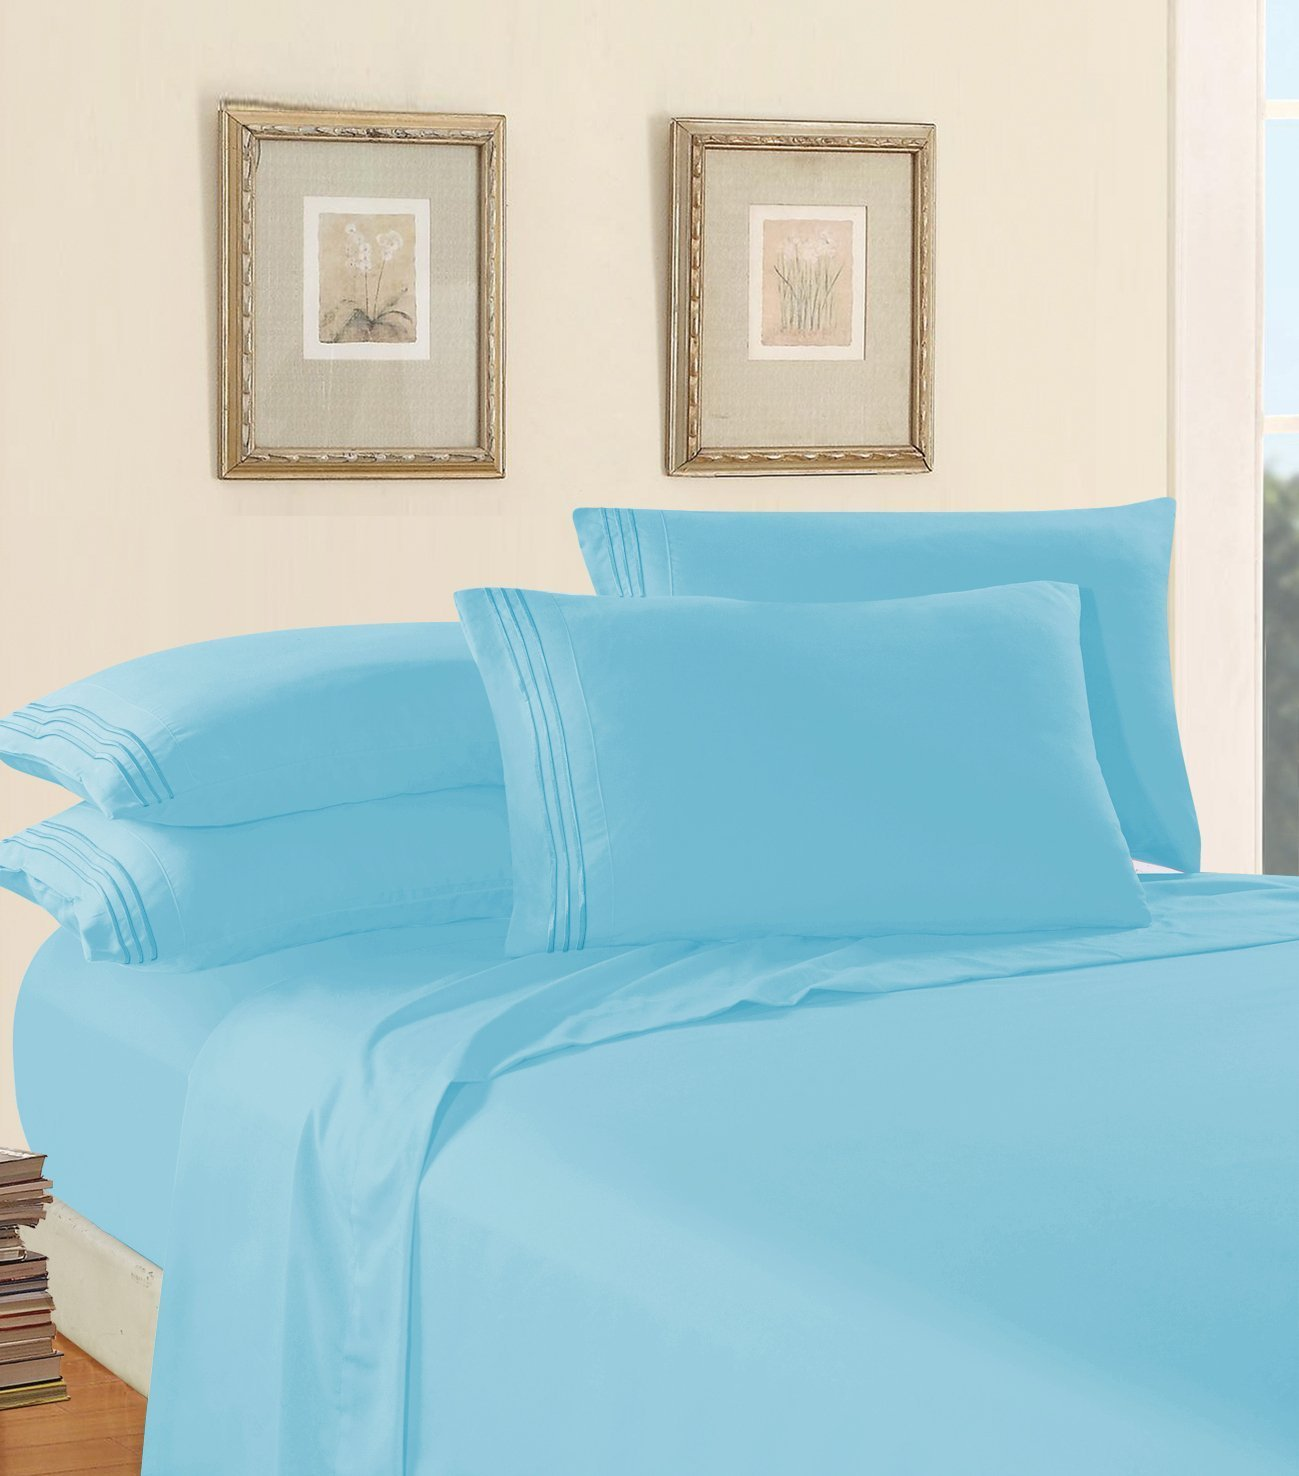 Luxury Bed Sheet Set on Amazon! Elegant Comfort Three-Line Design 1500 Thread Count Egyptian Quality Wrinkle and Fade Resistant 3-Piece Bed Sheet set, Deep Pocket, Twin/Twin XL, Aqua Blue